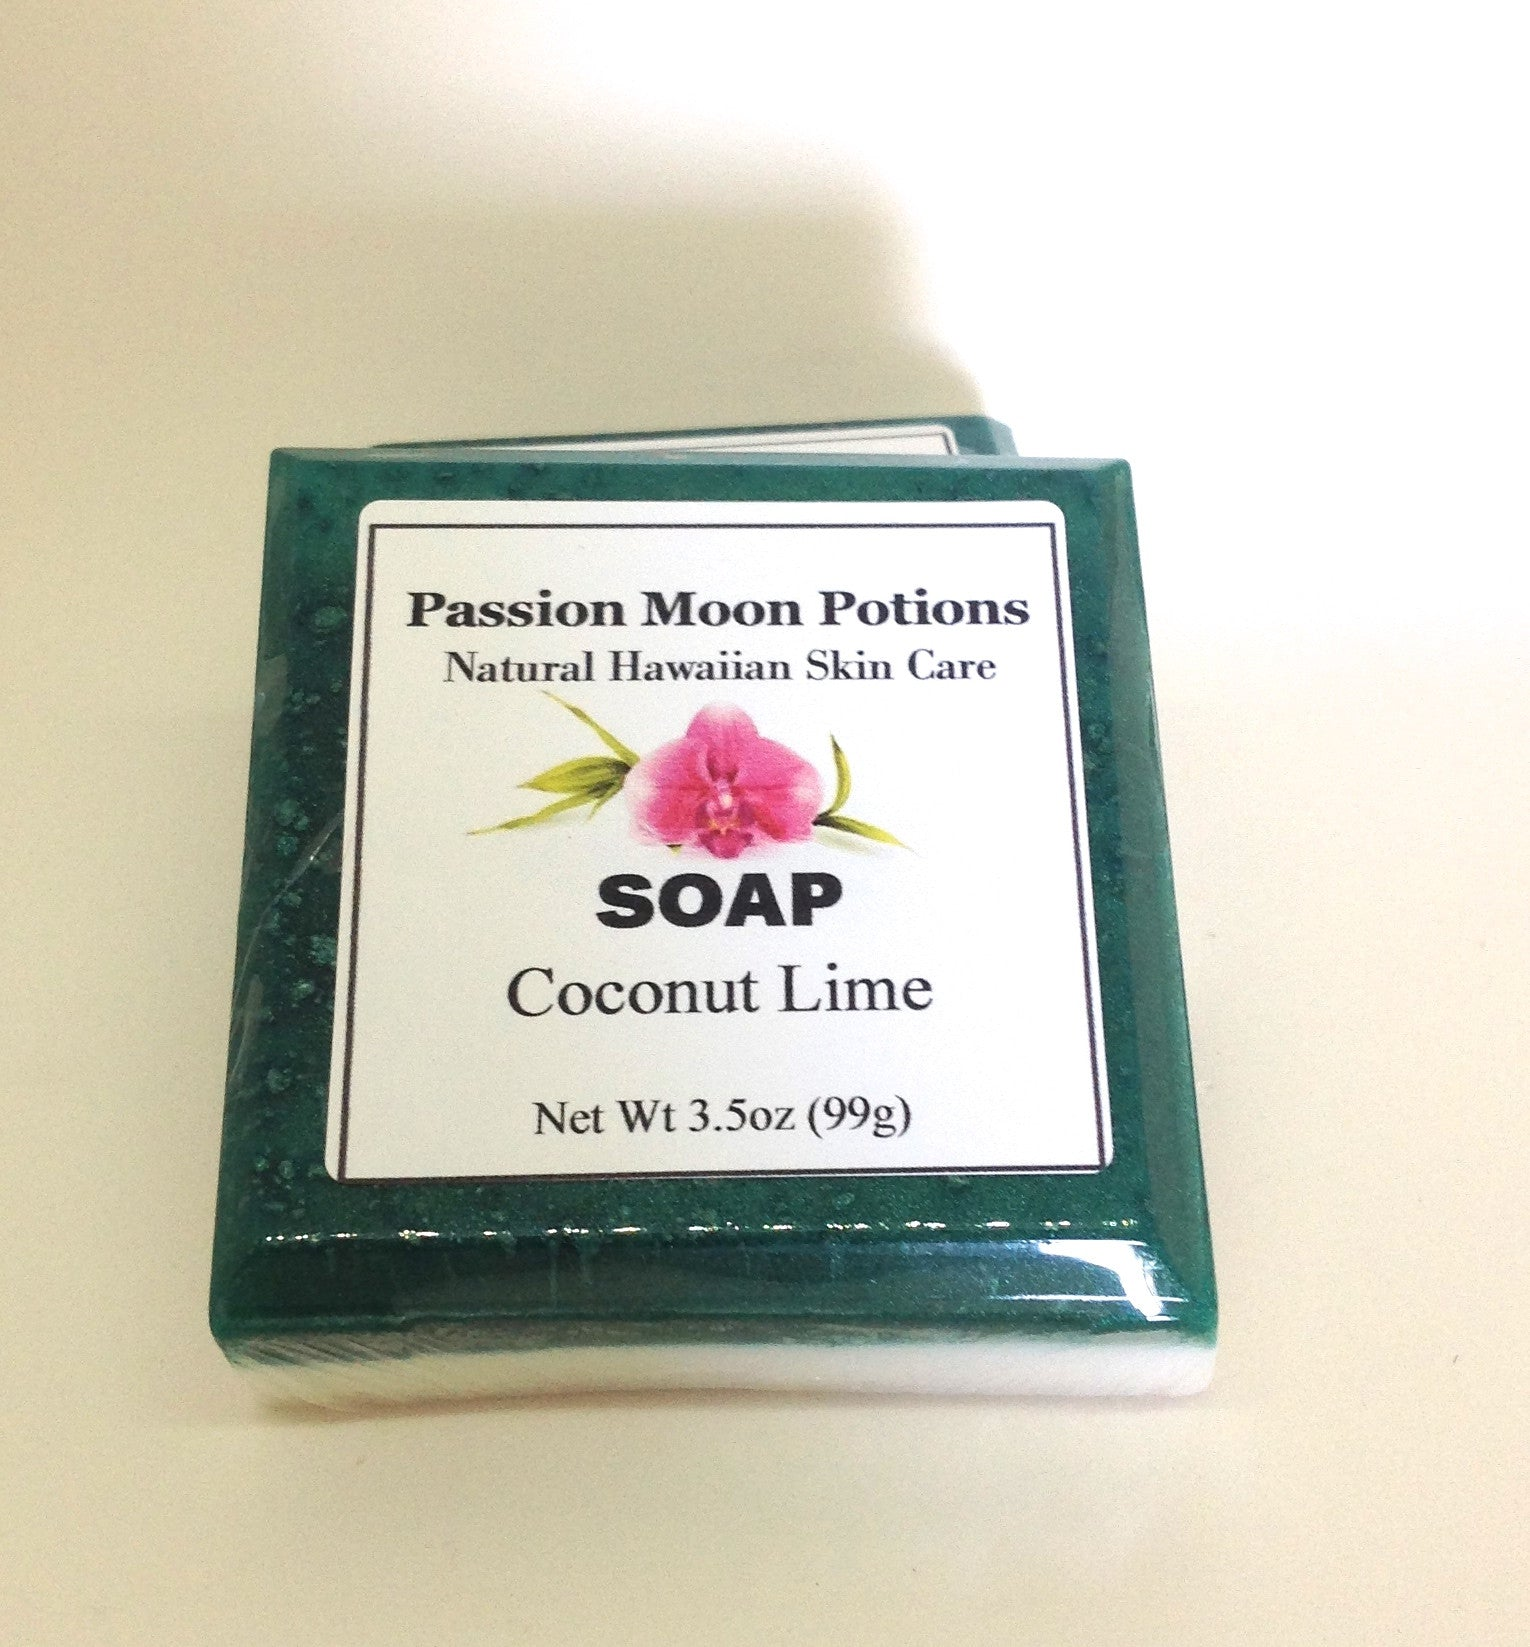 Coconut Lime Soap - Passion Moon Potions - 3